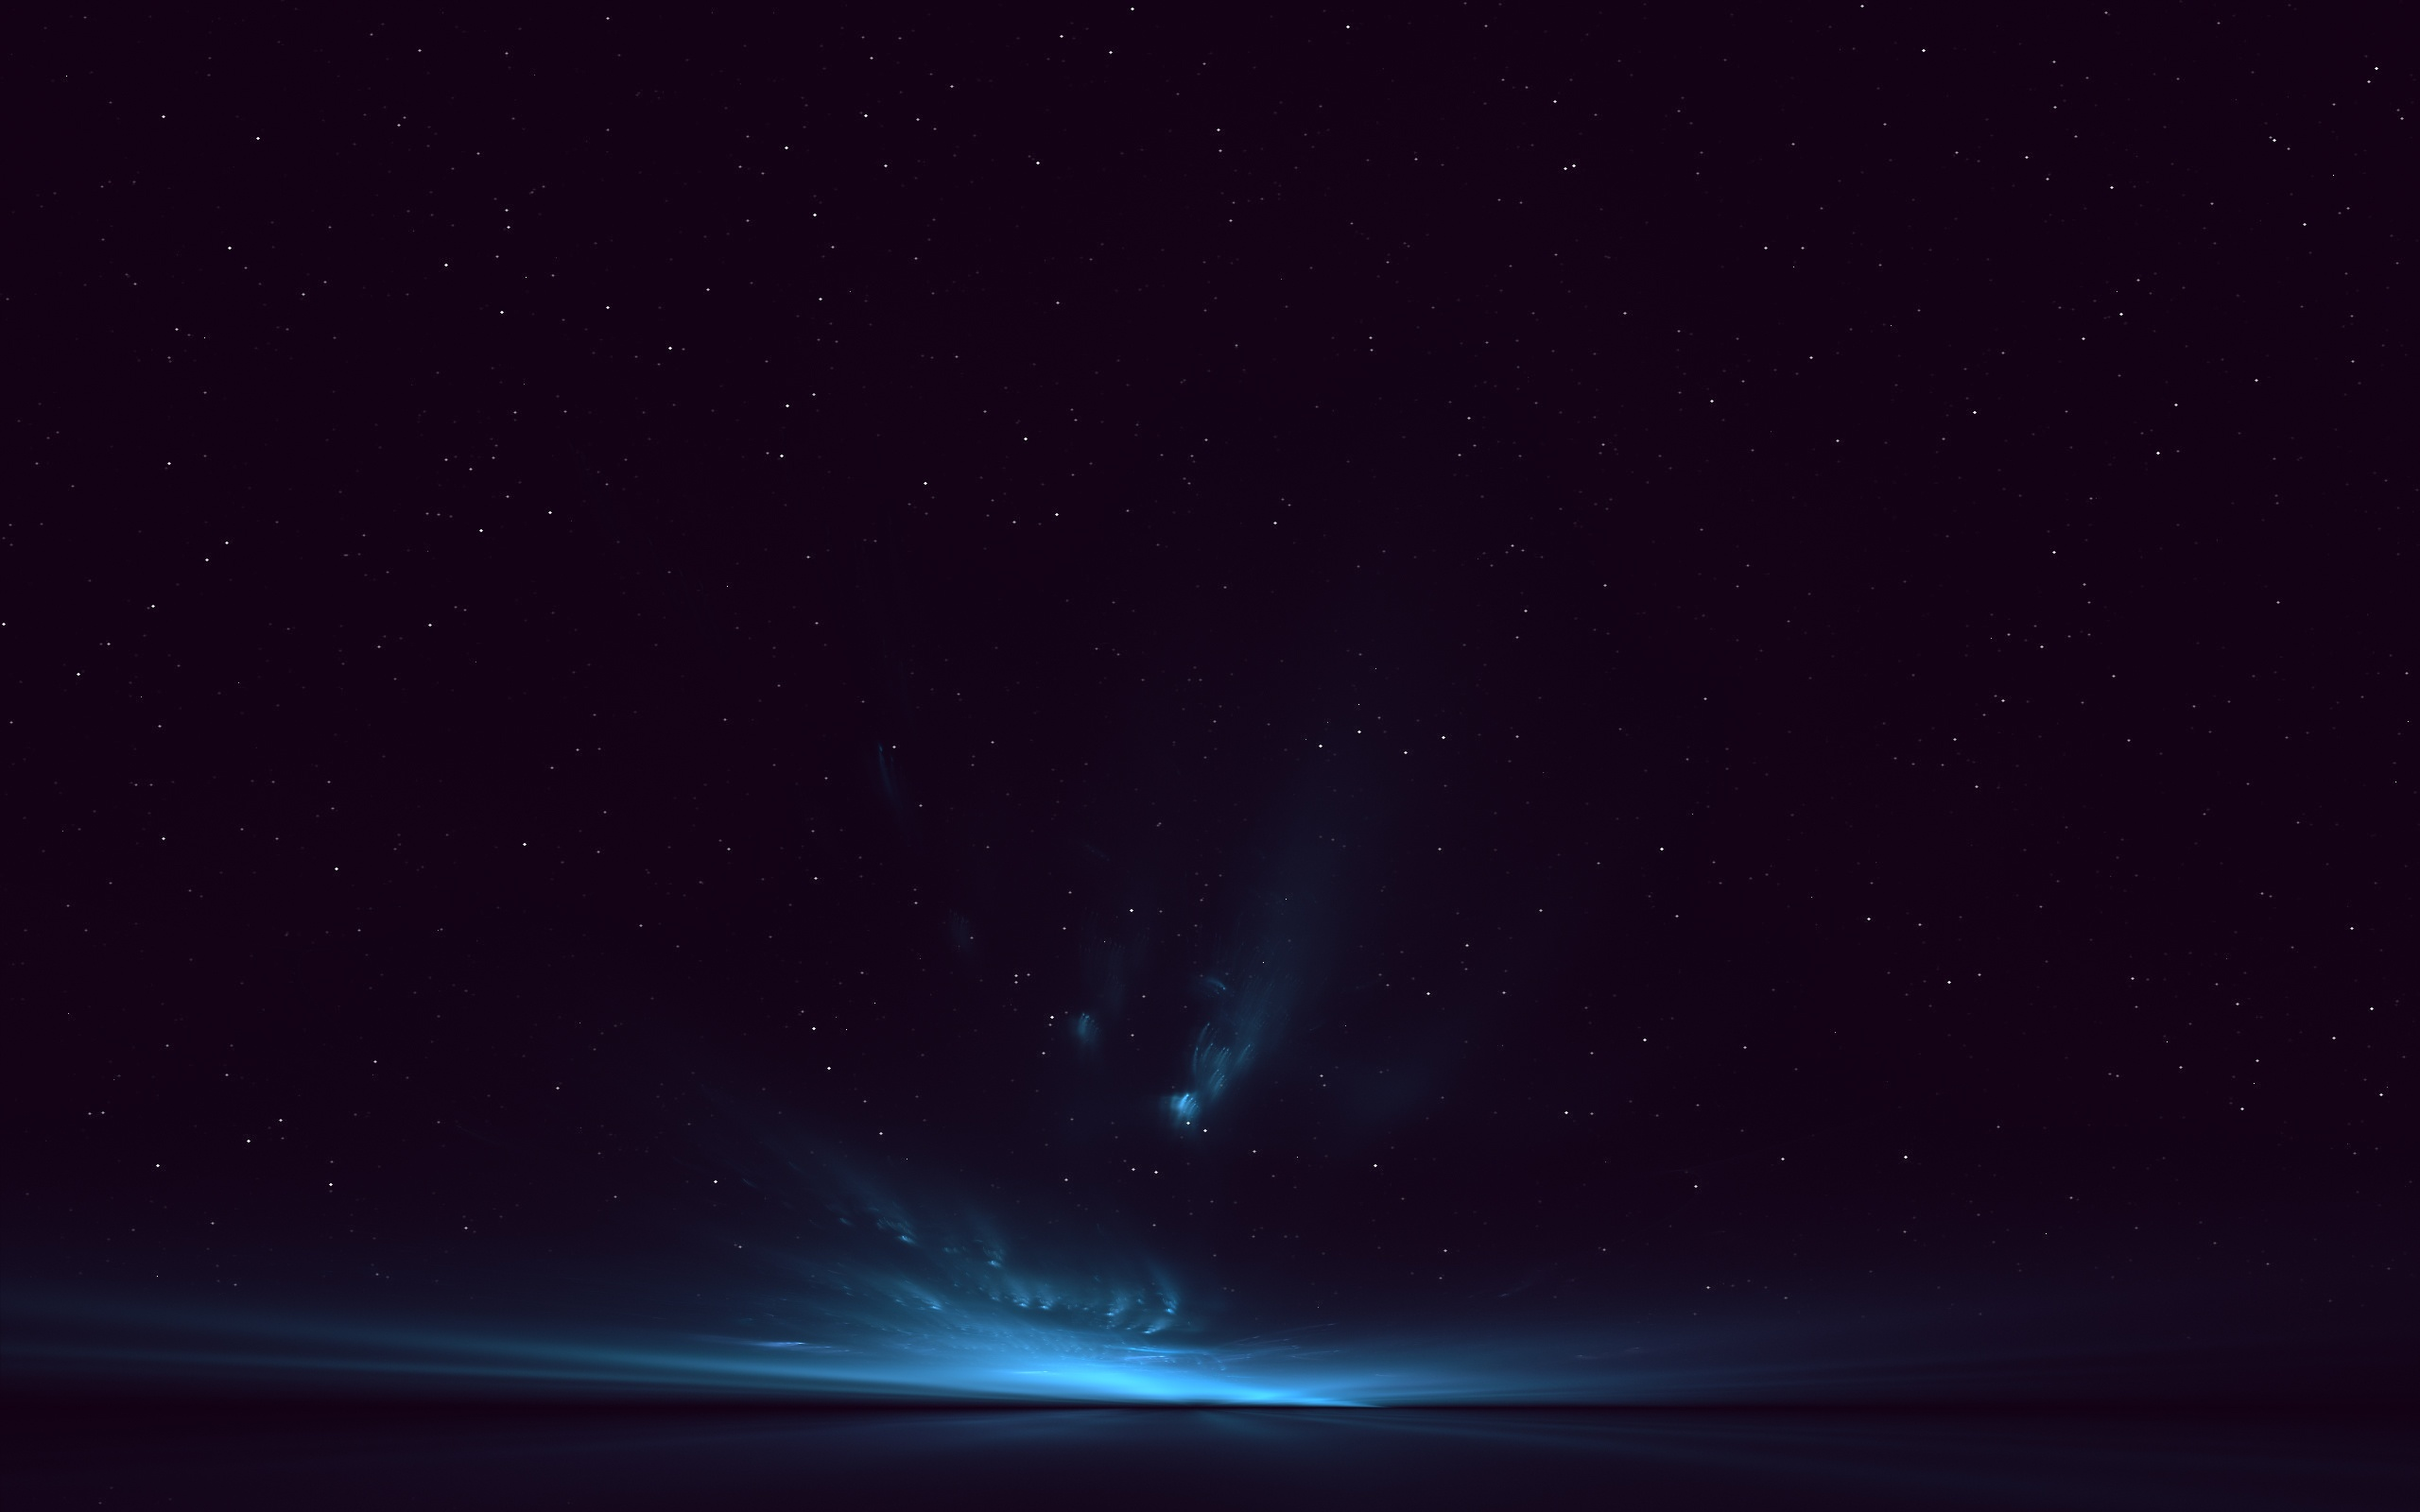 Space Deep Dark Blue Clouds Wallpaper 2560x1600